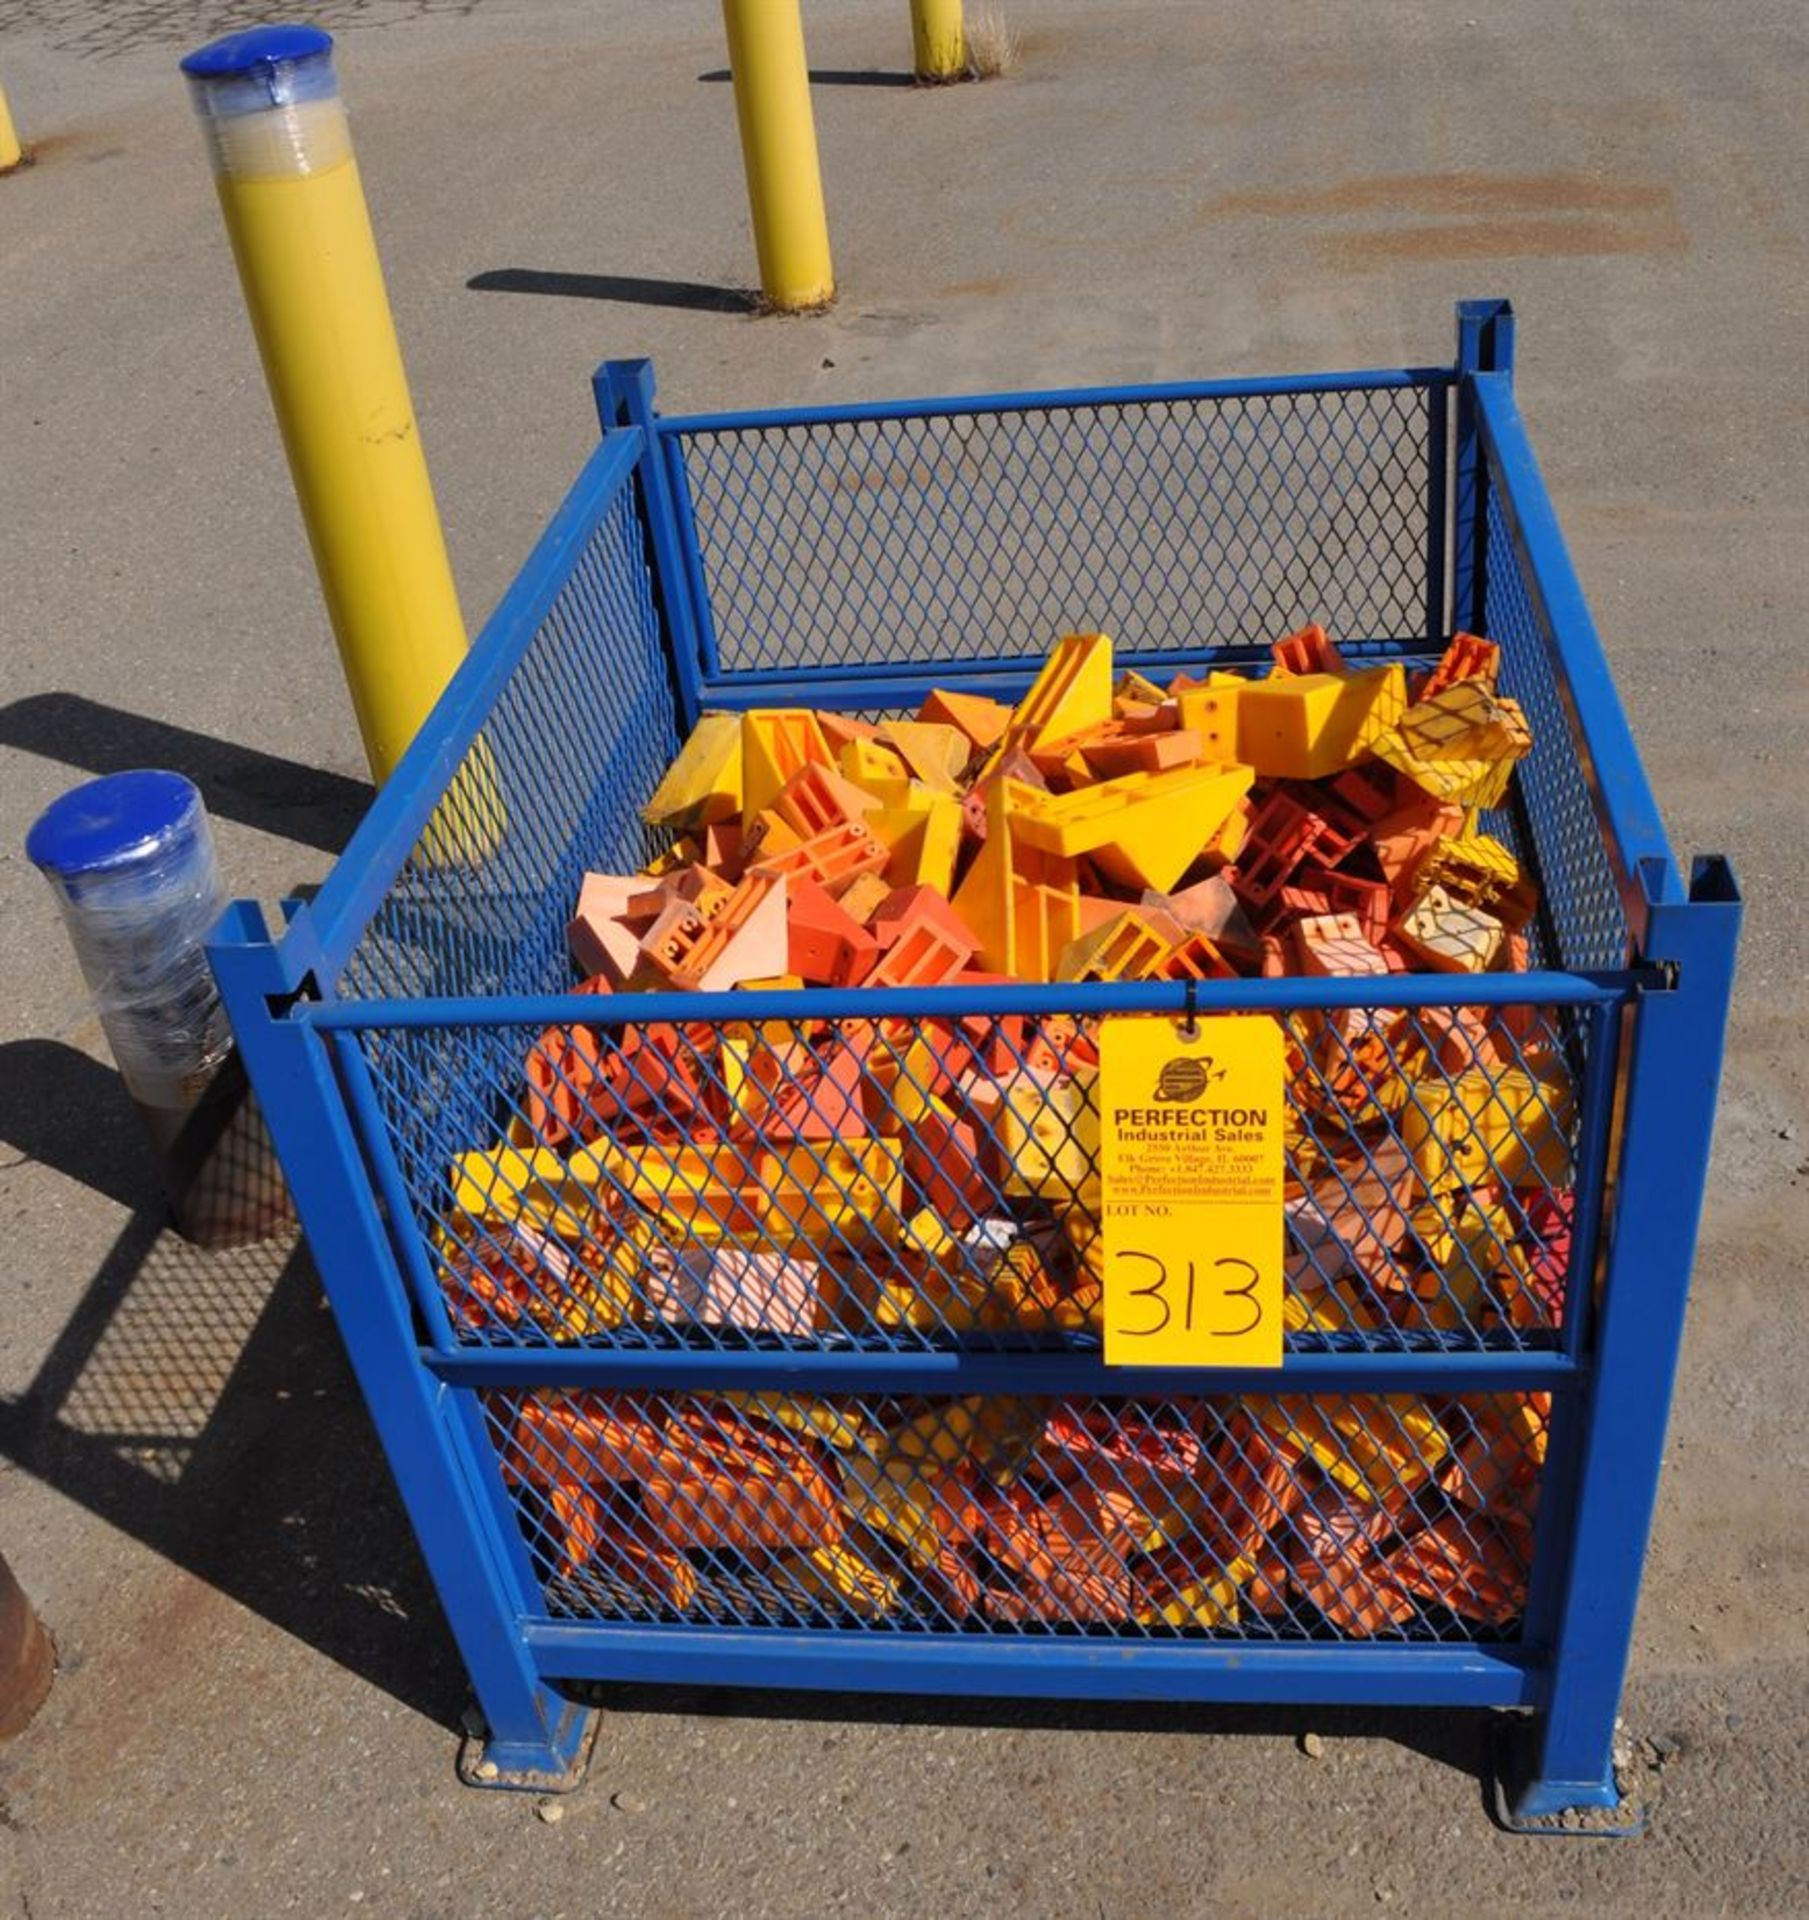 Assorted chocks, excludes basket/cage